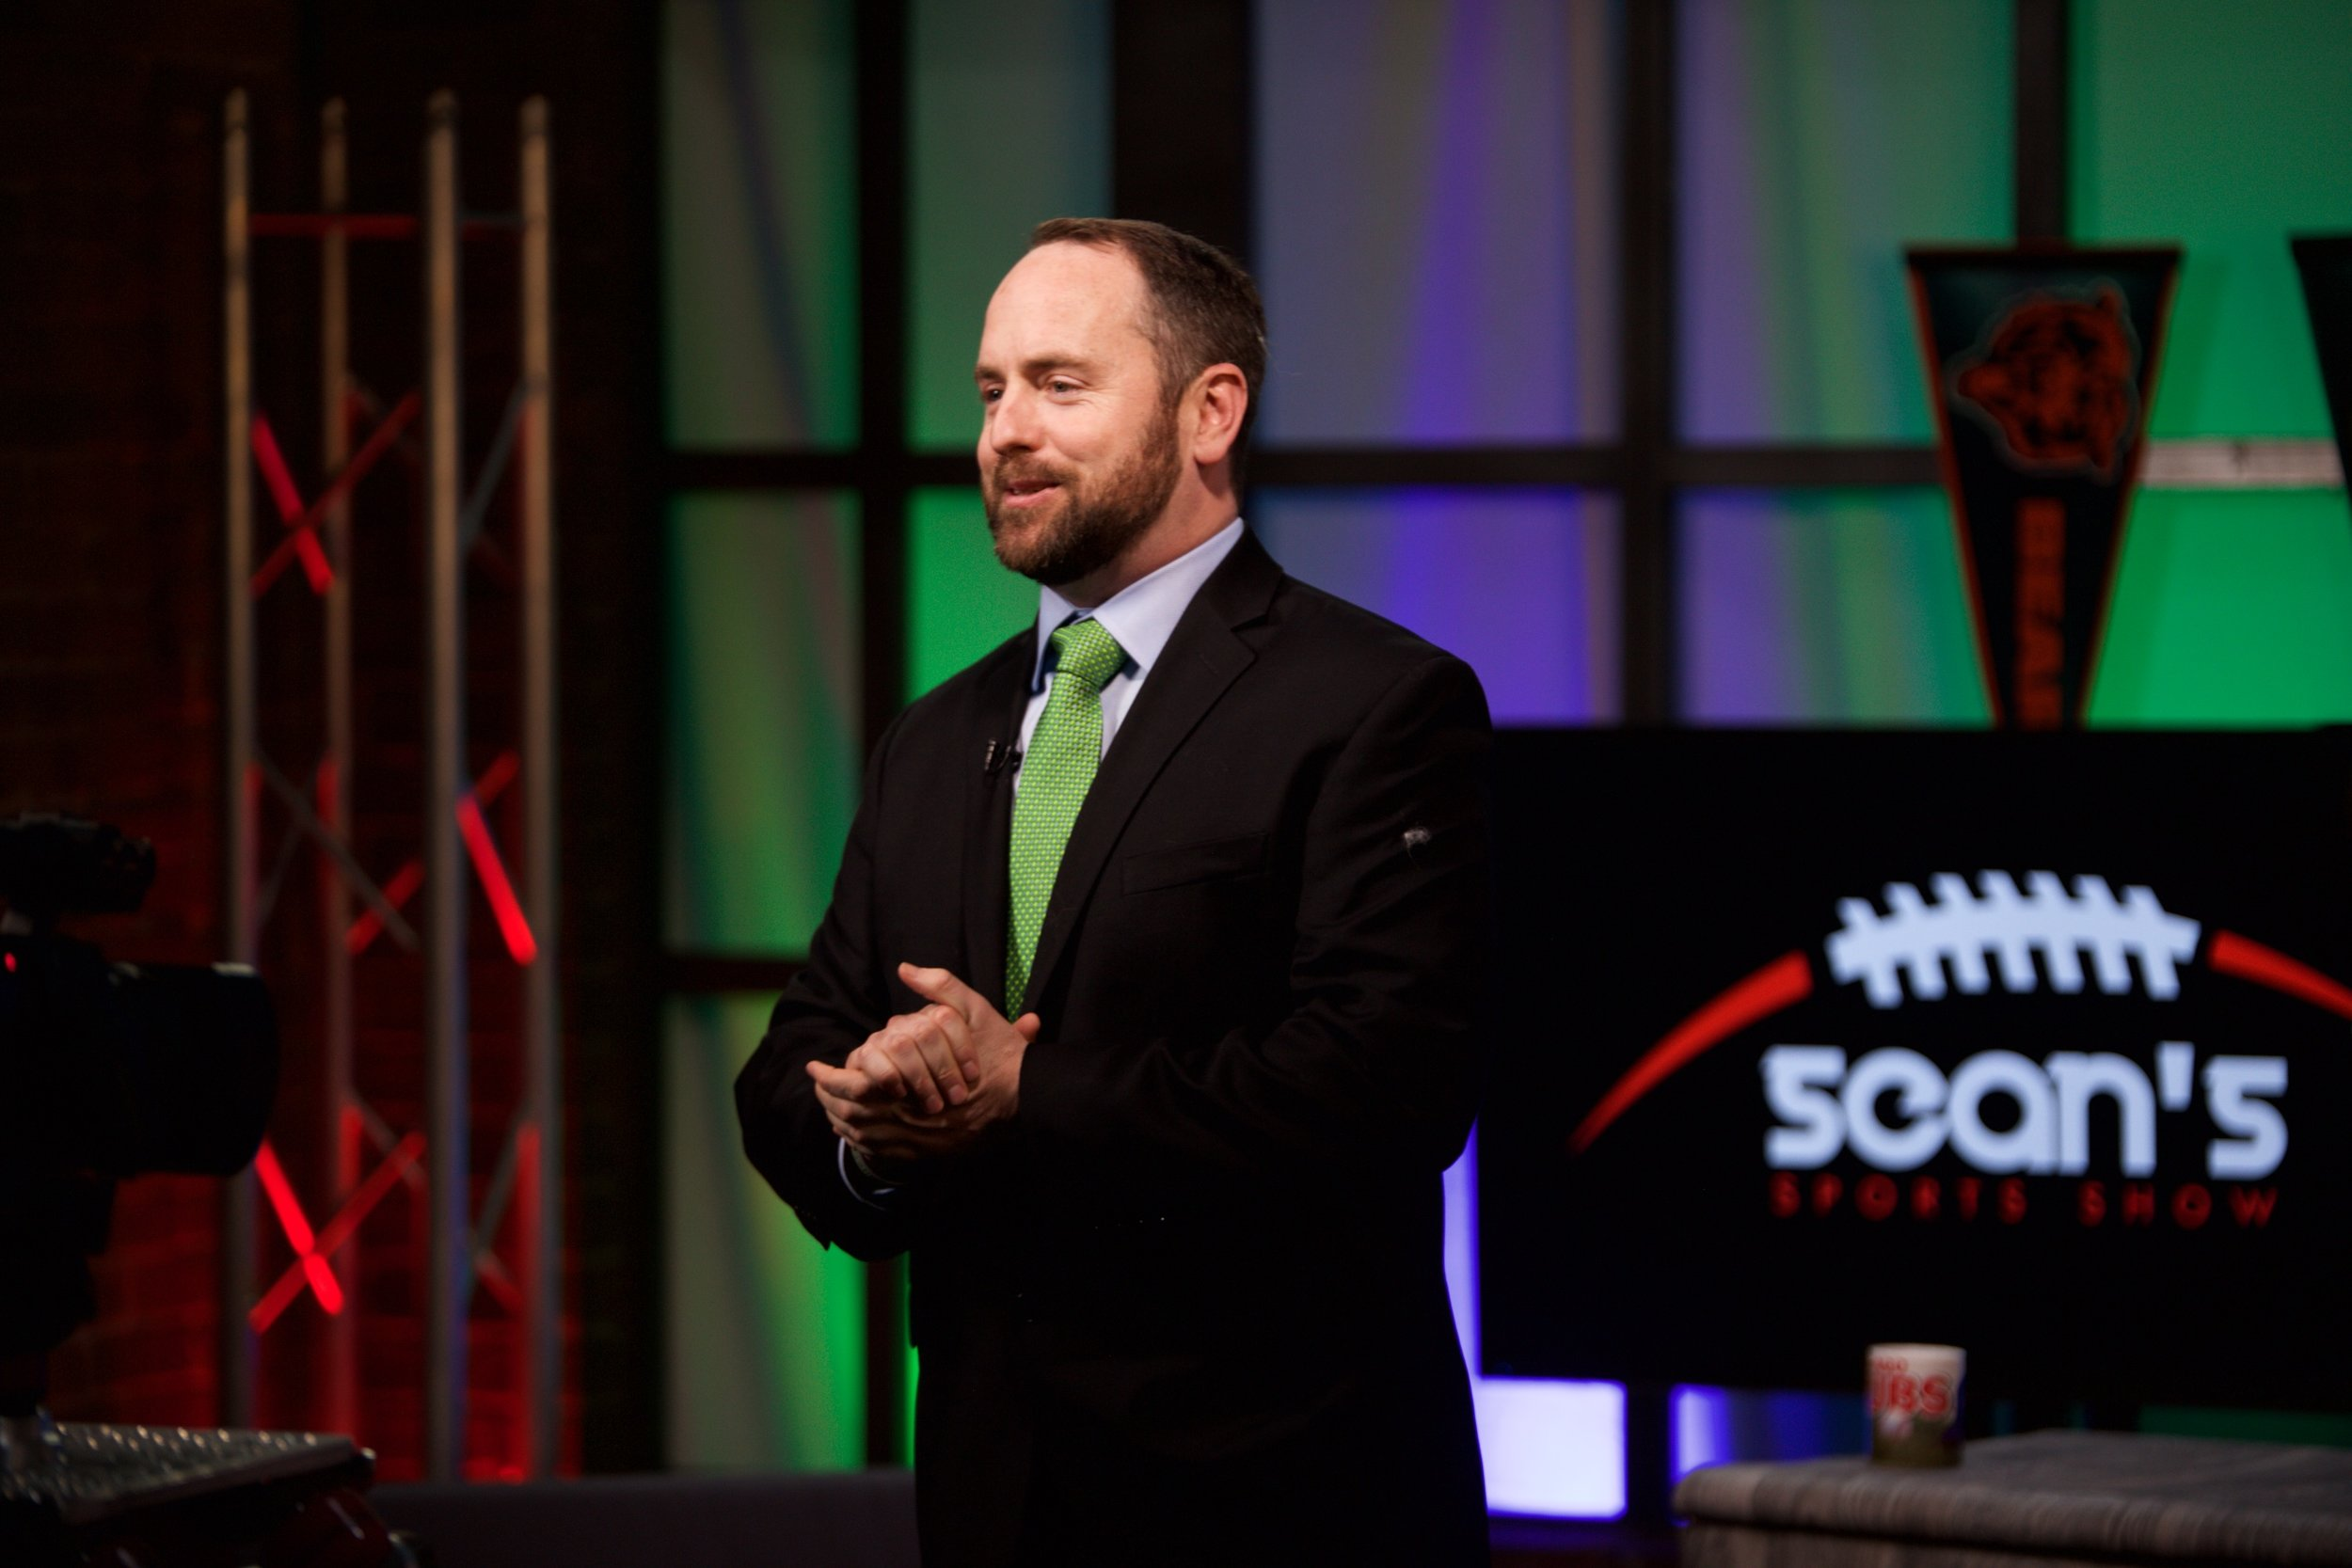 Seans Sports Show Sean Green 10.jpg